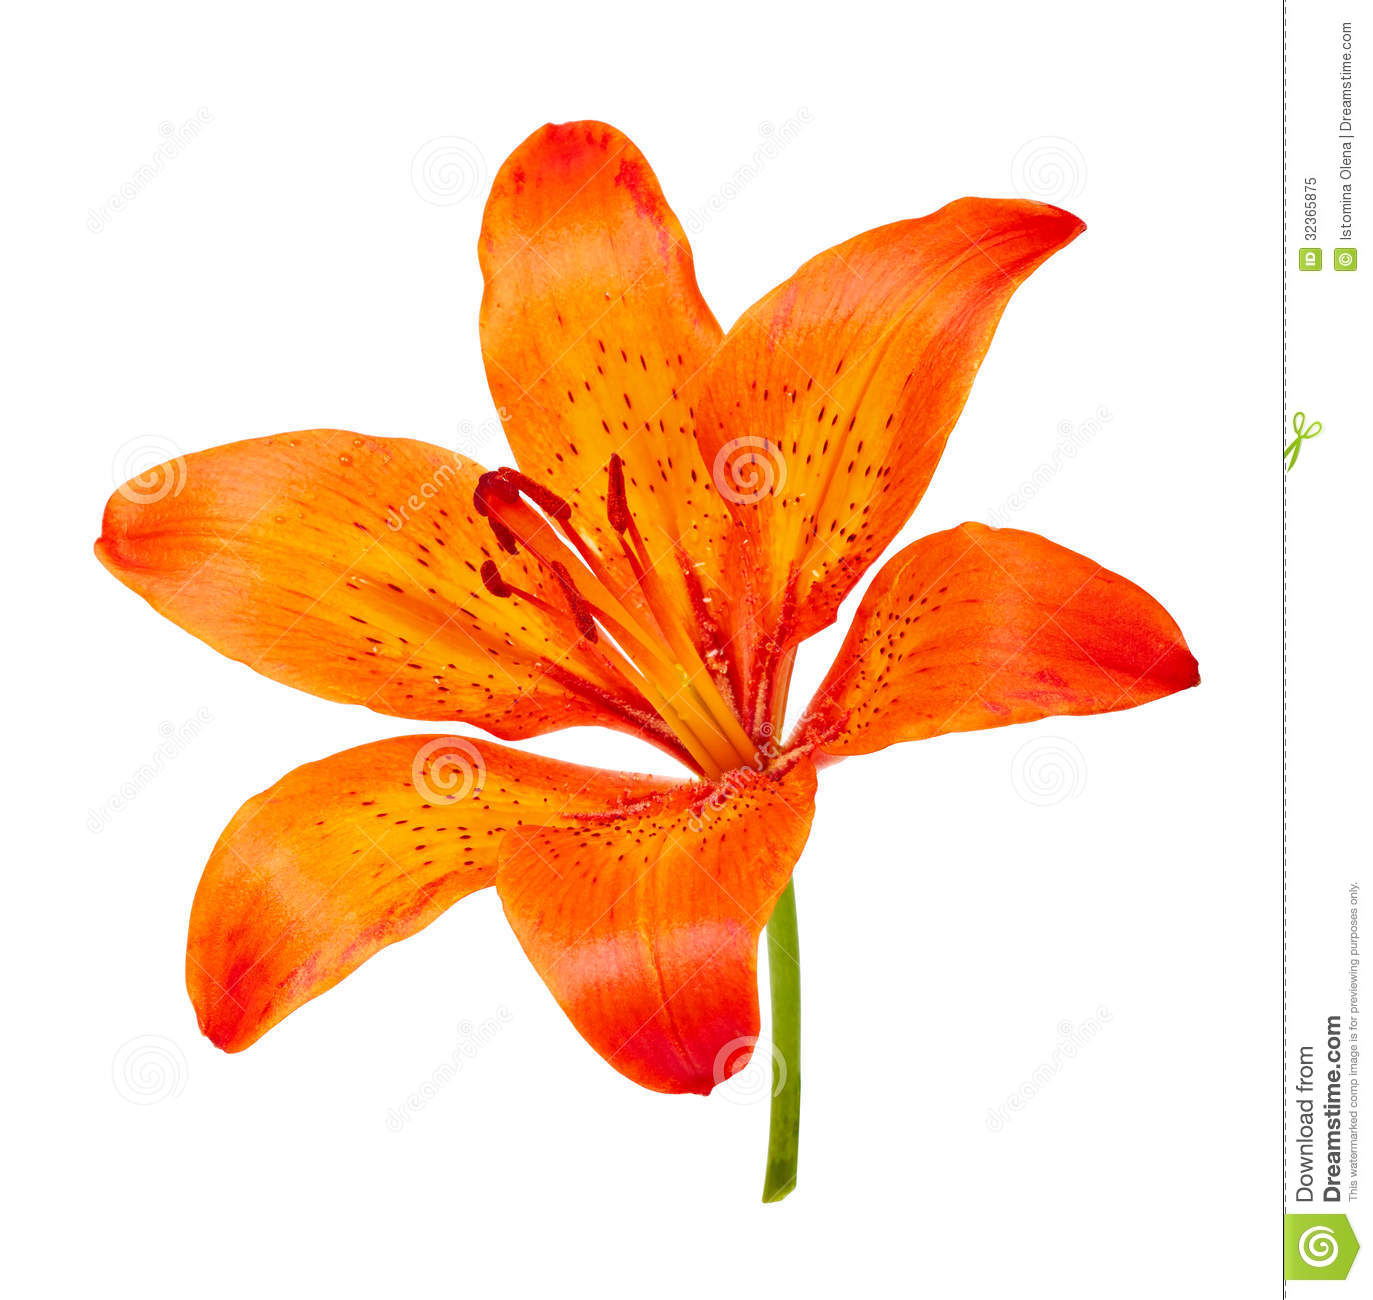 Tiger Lily clipart #18, Download drawings